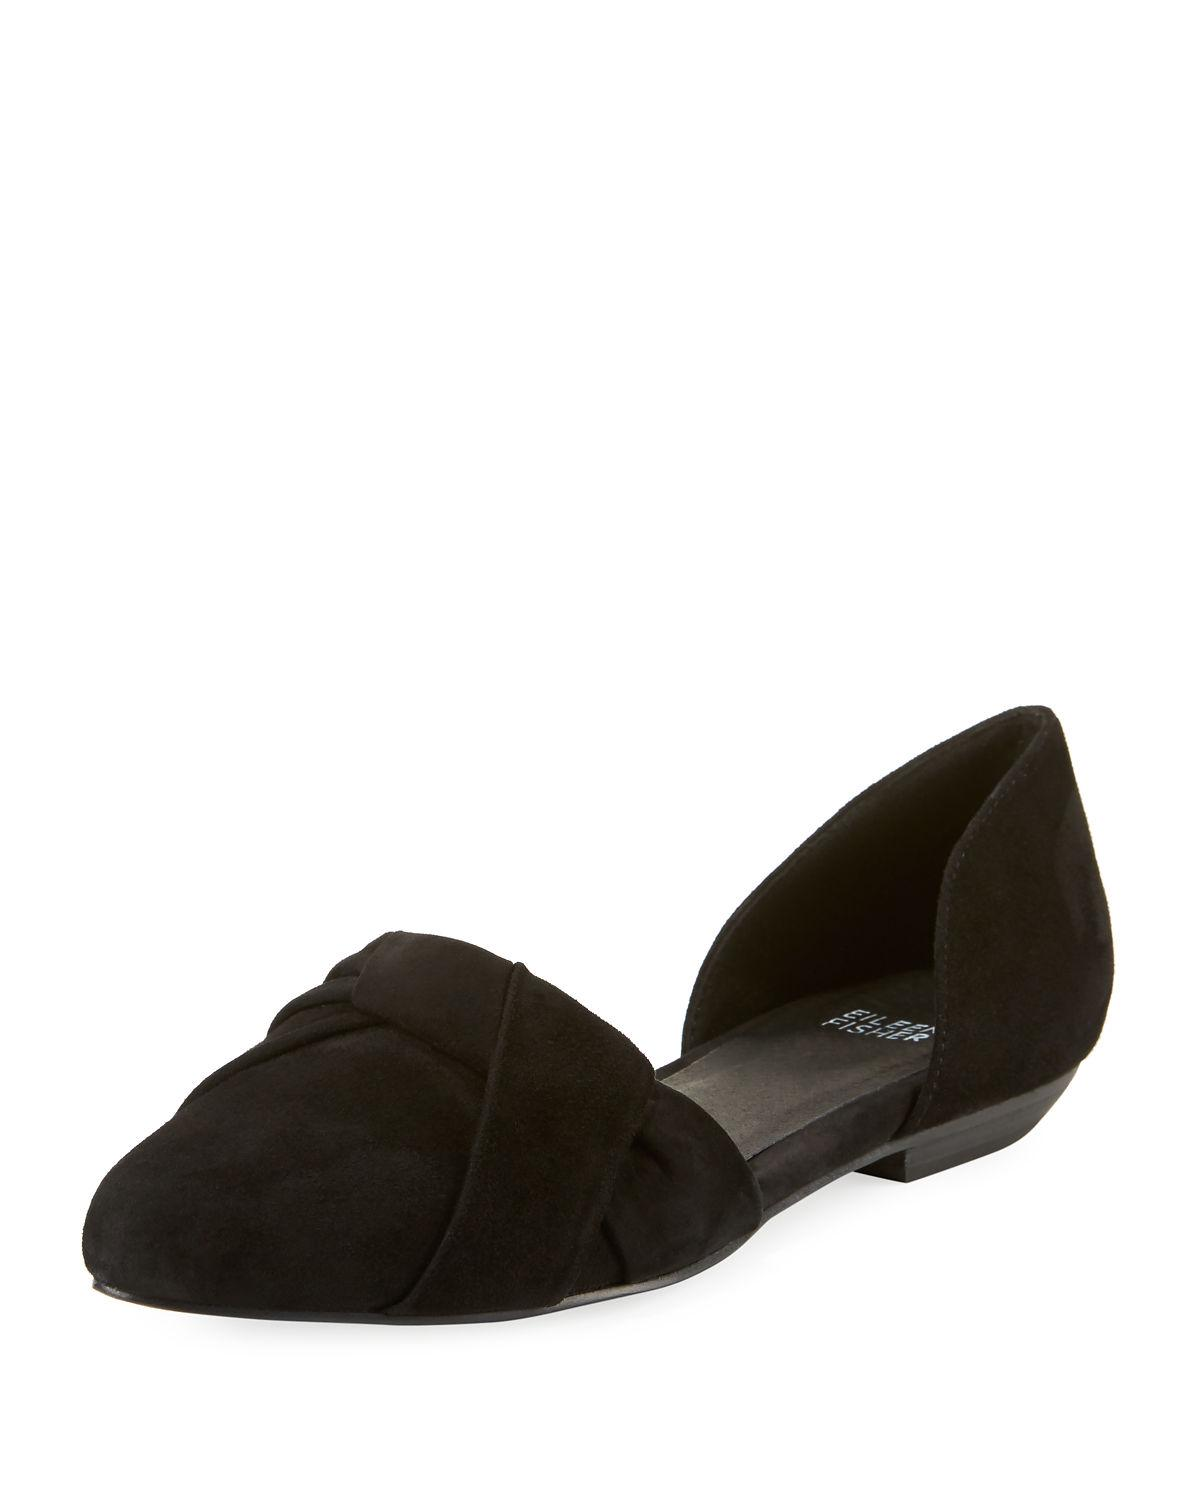 Eileen Fisher Full Suede Two-piece Ballet Flats In Black Suede